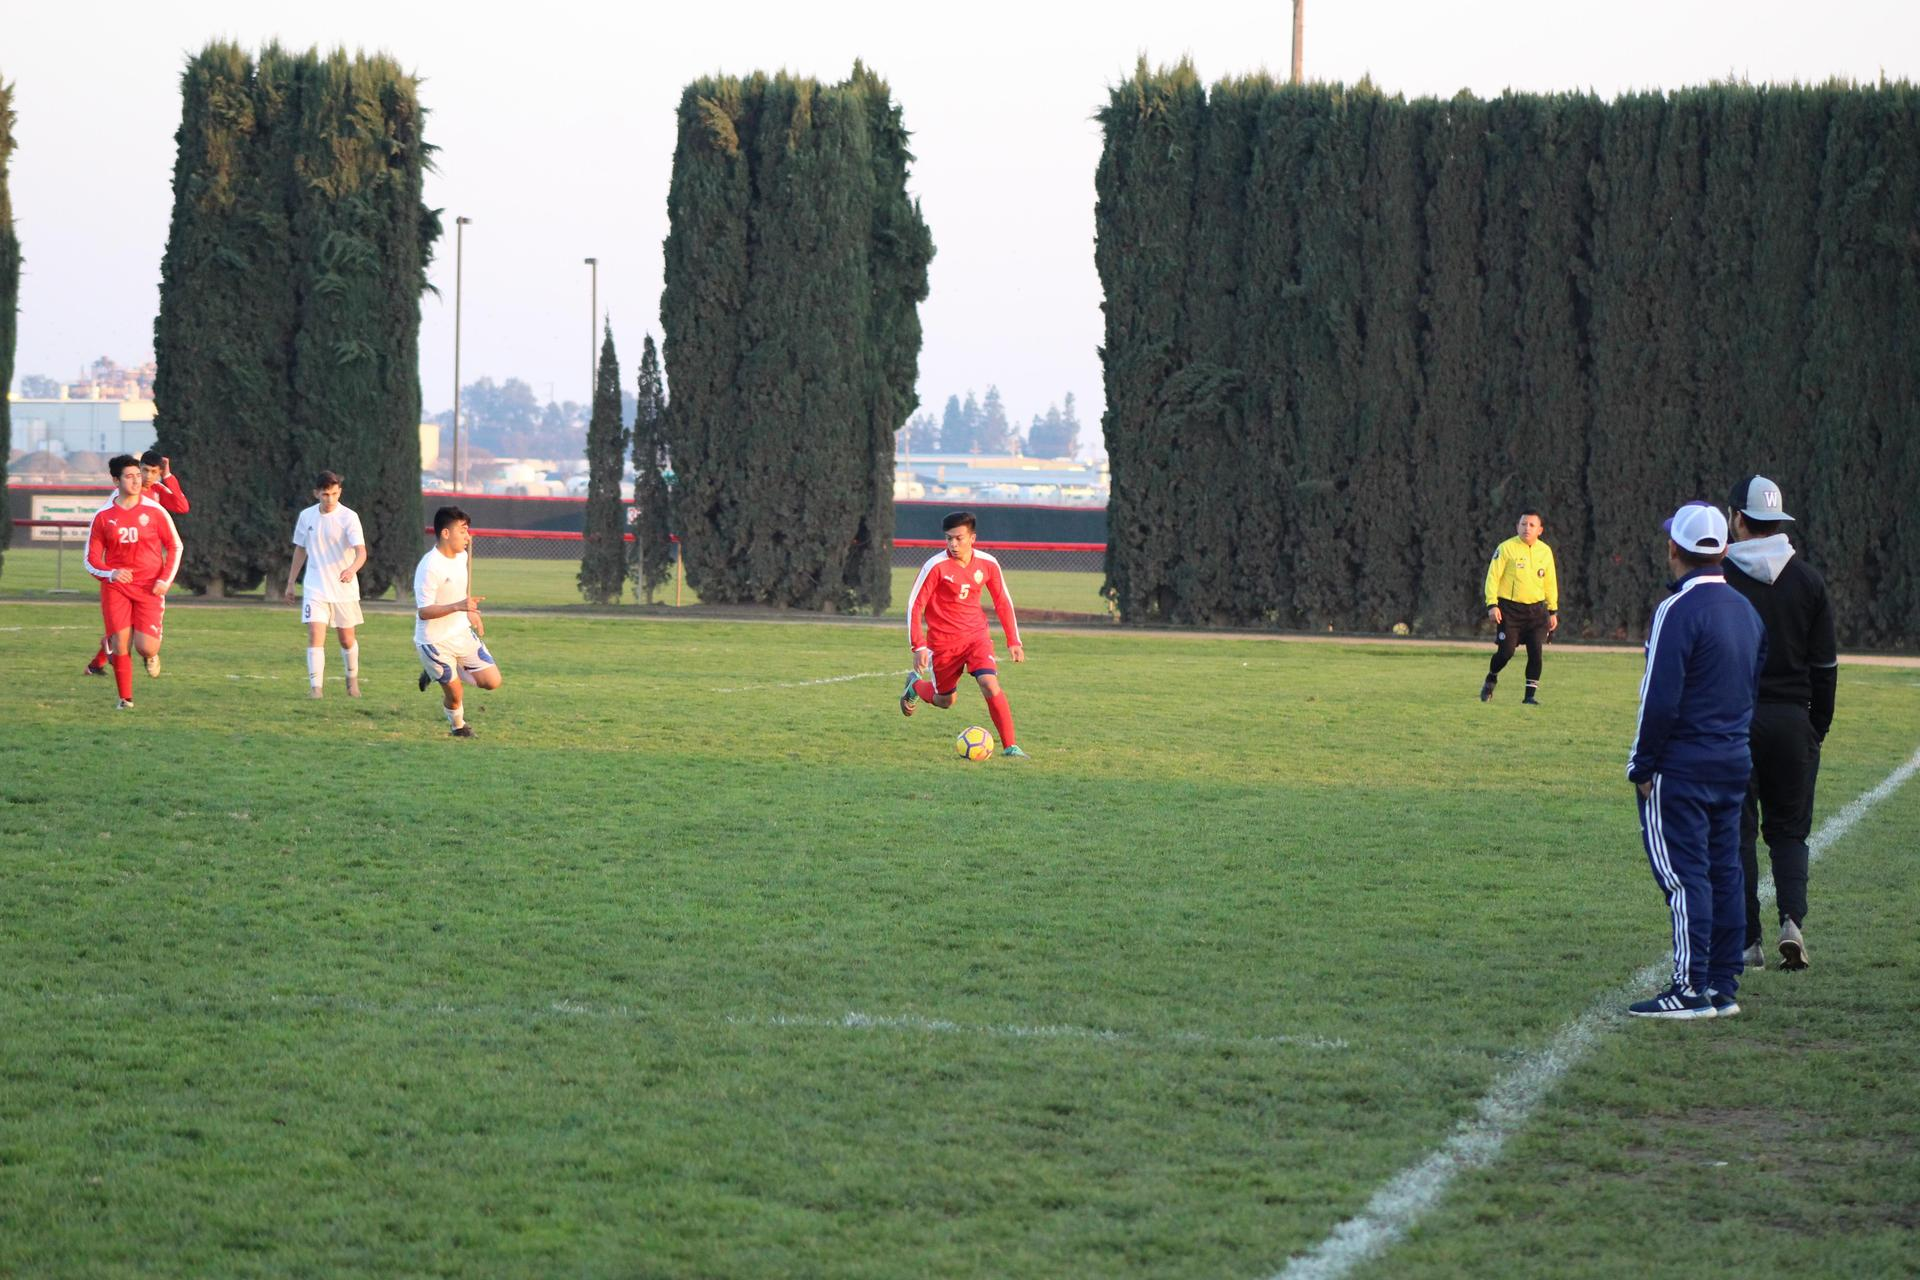 Boys playing soccer against Washington union